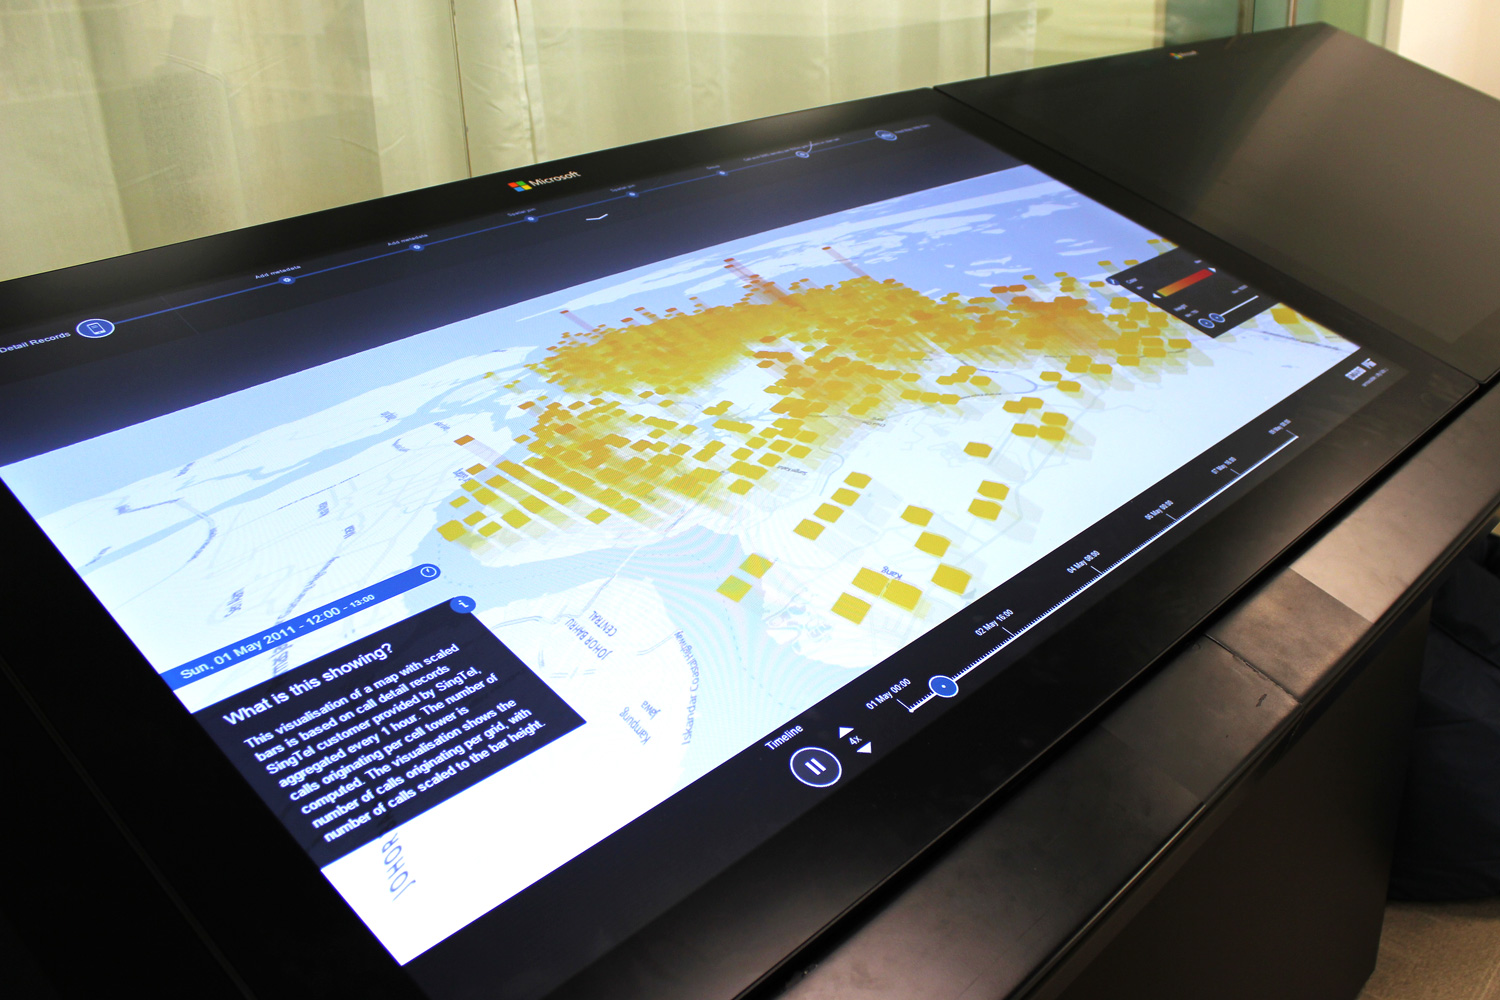 Data Drives - Interactive Installation by the MIT Senseable City Lab